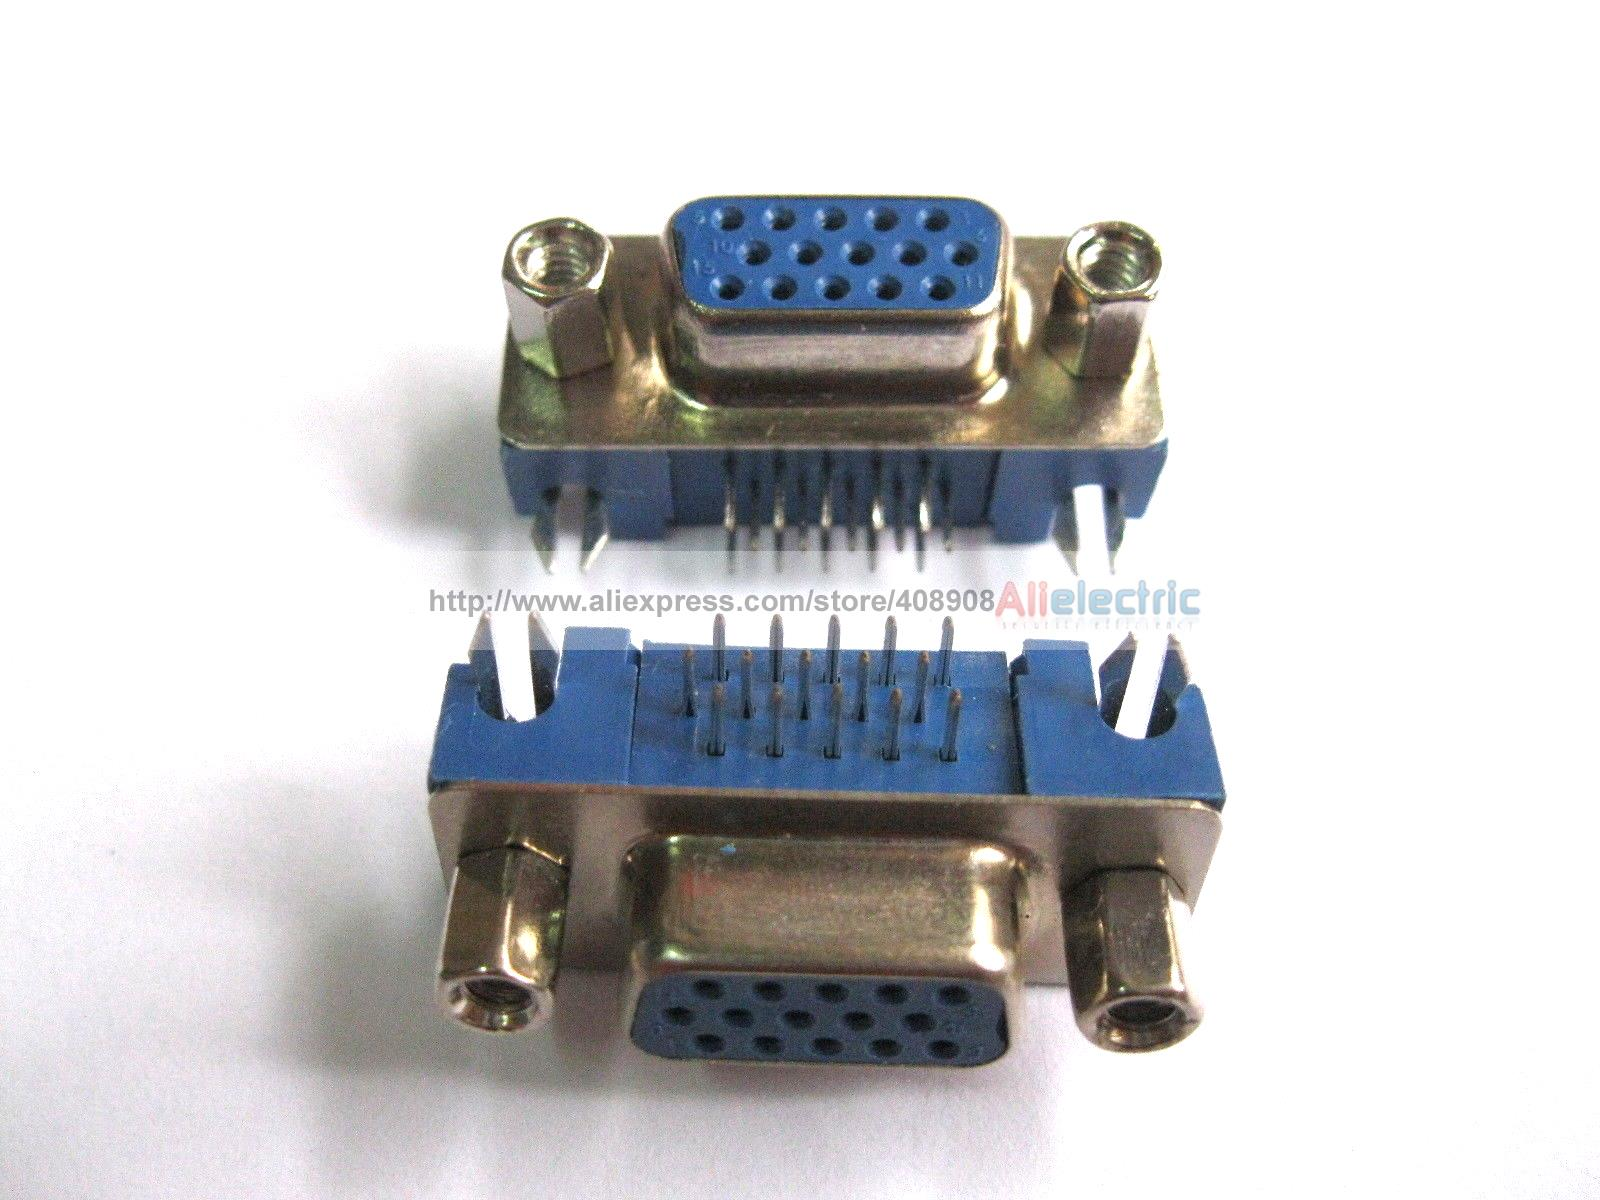 30 Pcs D Sub 15 Pin Female Connector Right Angle 3 Row Short Blue <br>